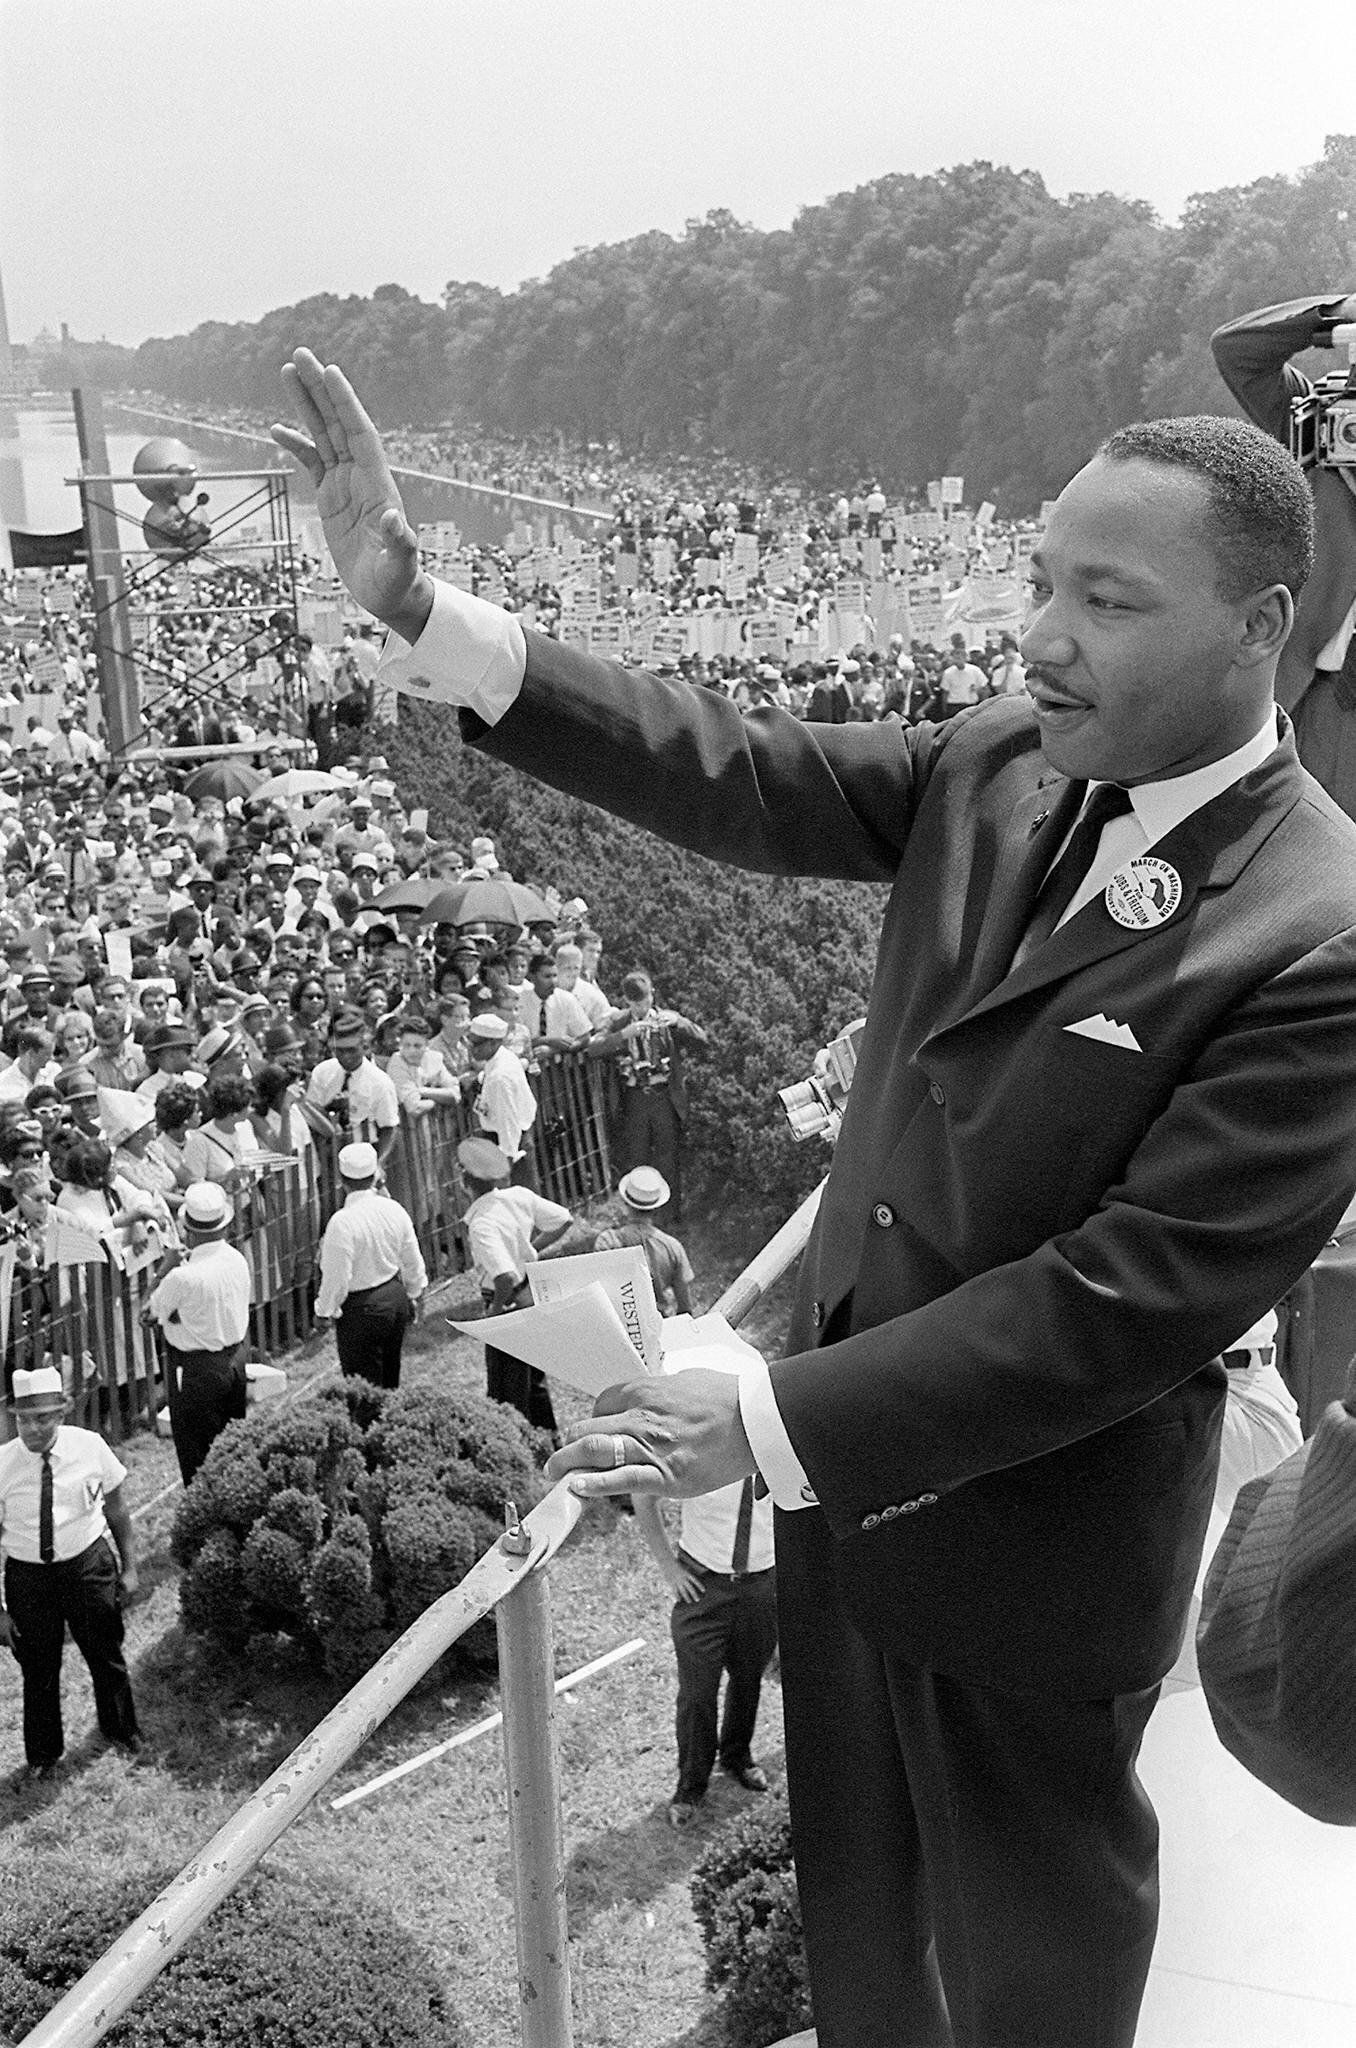 (FILES) US civil rights leader Martin Luther KIng waves to supporters 28 August 1963 from the Lincoln Memorial on the Mall in Washington DC during the 'March on Washington'. On the steps of the Lincoln Memorial, King delivered his 'I Have a Dream' speech, which is credited with mobilizing supporters of desegregation and prompted the 1964 Civil Rights Act. 28 August, 2003 marks the 40th anniversay of the speech. King was assassinated on 04 April 1968 in Memphis, Tennessee by James Earl Ray, who confessed to the shooting and was sentenced to 99 years in prison. AFP PHOTO/FILES  (Photo credit should read -/AFP/Getty Images)